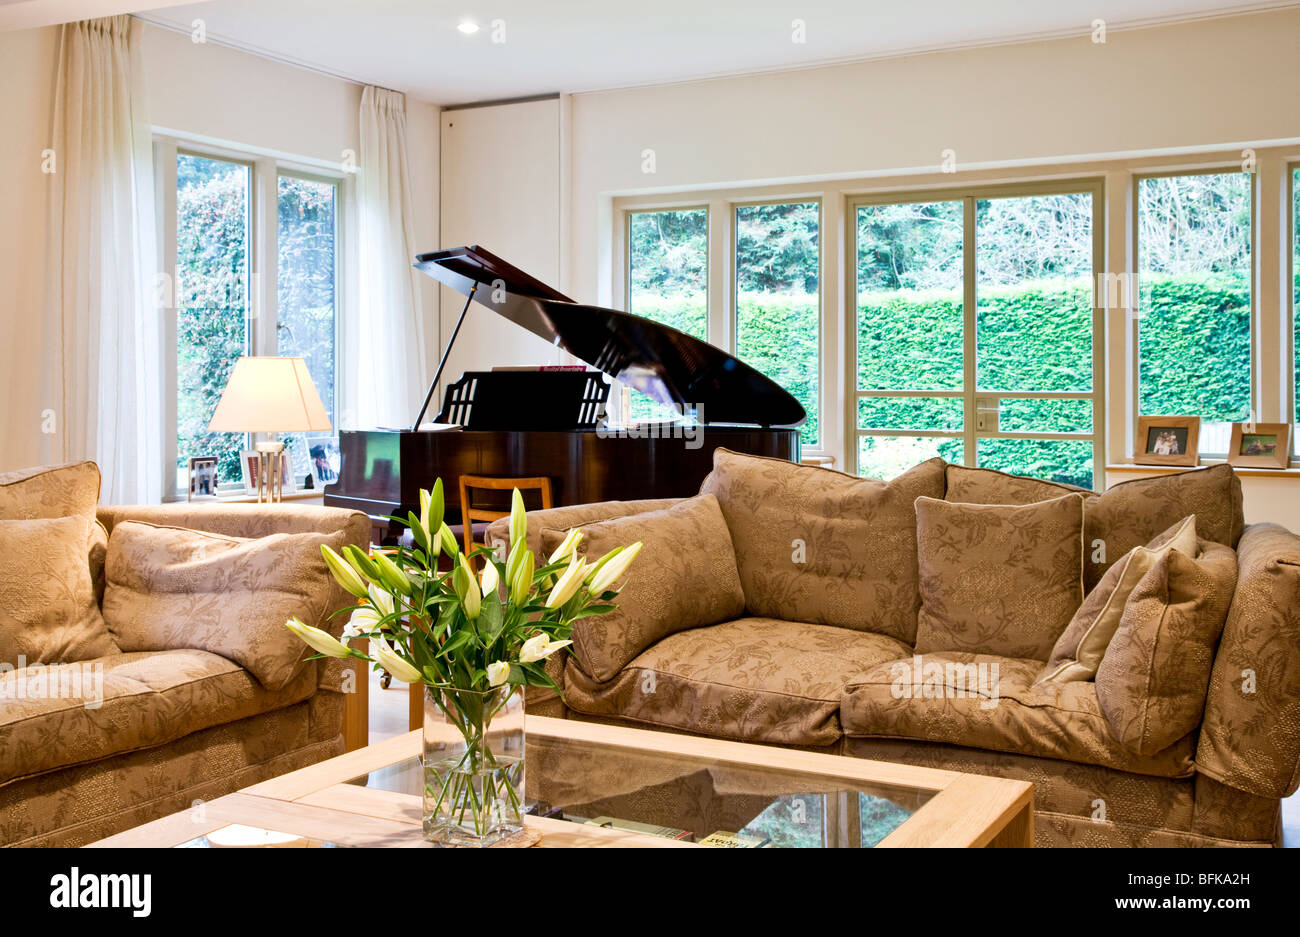 A stylish smart modern lounge, living or sitting room with a baby grand piano and vase of white lilies - Stock Image